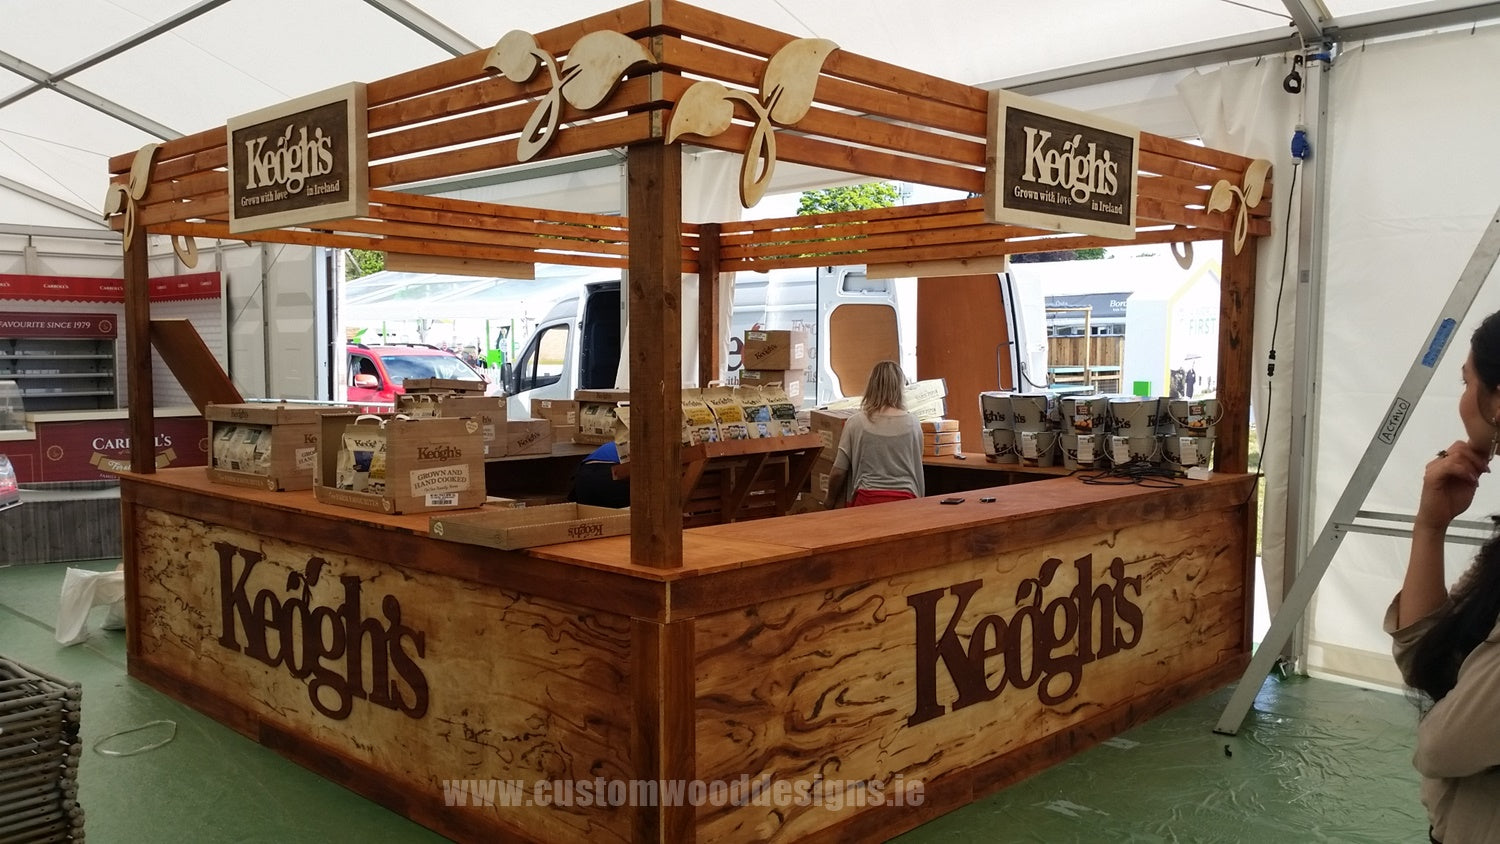 keoghs display stand crisps point of sale display irish manufacturer point od sale maker producer free standing unit display producer maker Ireland Dublin signs maker dublin beanding promotional product maker producer ireland dublin timber wooden festival stands the best sign amker ireland the best point of sale maker Dublin stuffing product wood promotional point of saele maker Dublin Ireland point of sale producer irish producer fsdu counter display units counter retail display specialists retail space display sepcialists retail wooden display shop wooden display maker manufacturer shop retail maker wood producer pint of sale branded crates branded items